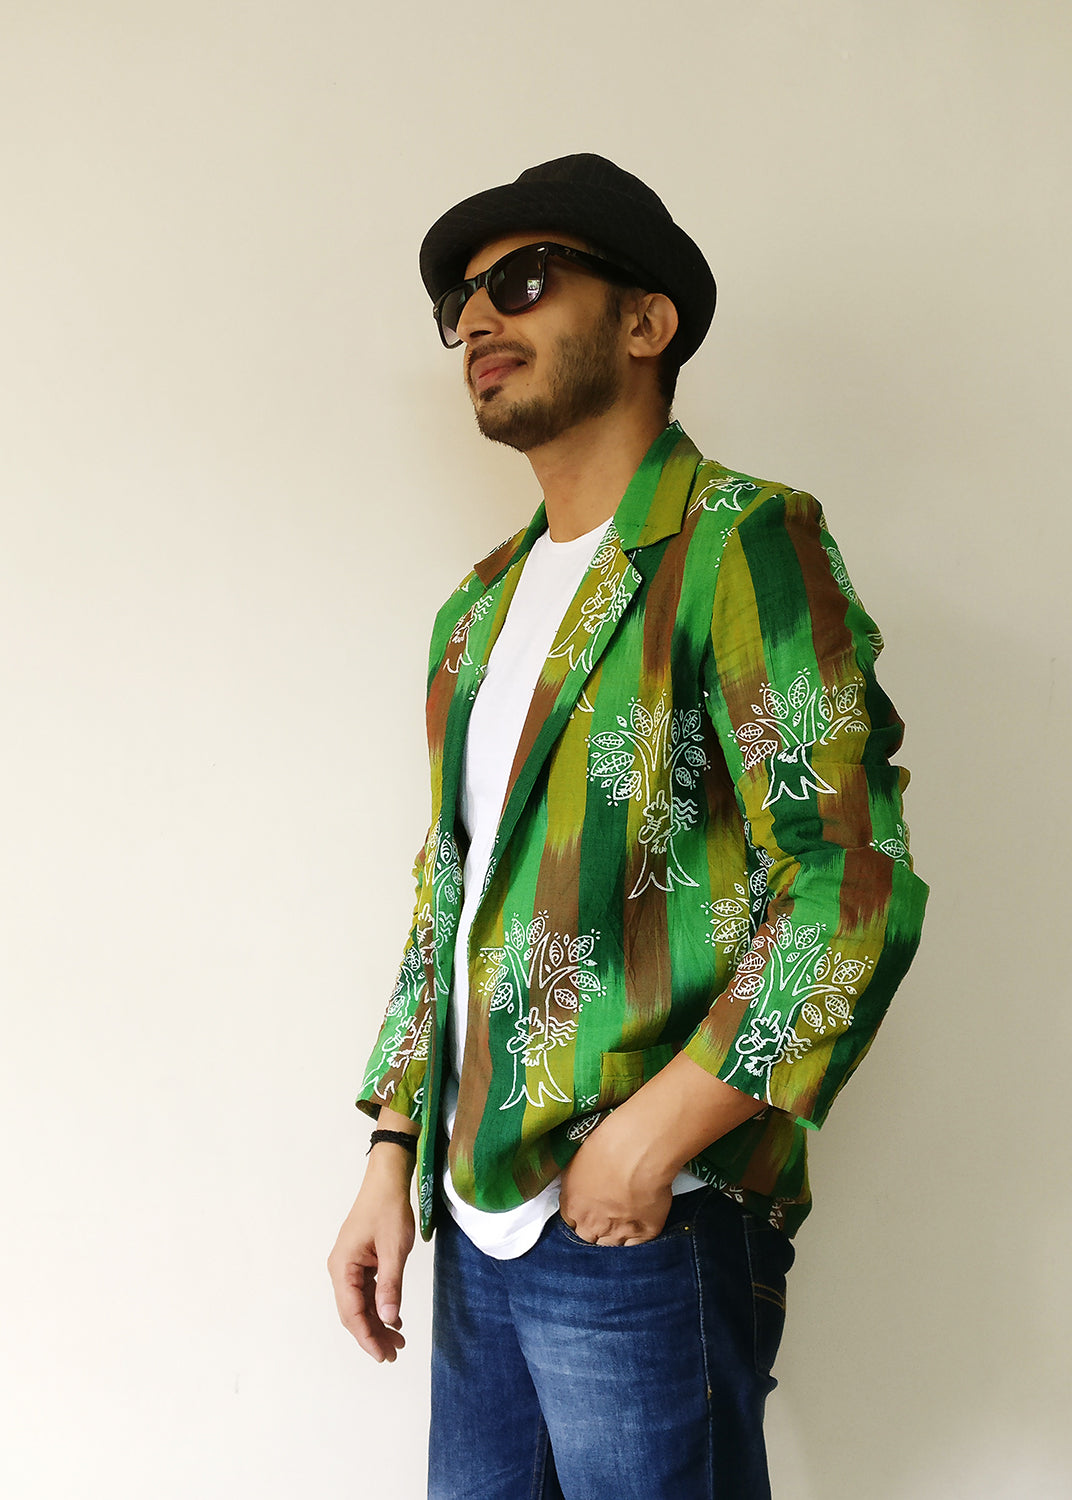 We protect trees, our lifeline, our land, our planet, like the women in Chipko Movement. Statement blazer jacket (green) for men. Handloom cotton with the help of the earth.